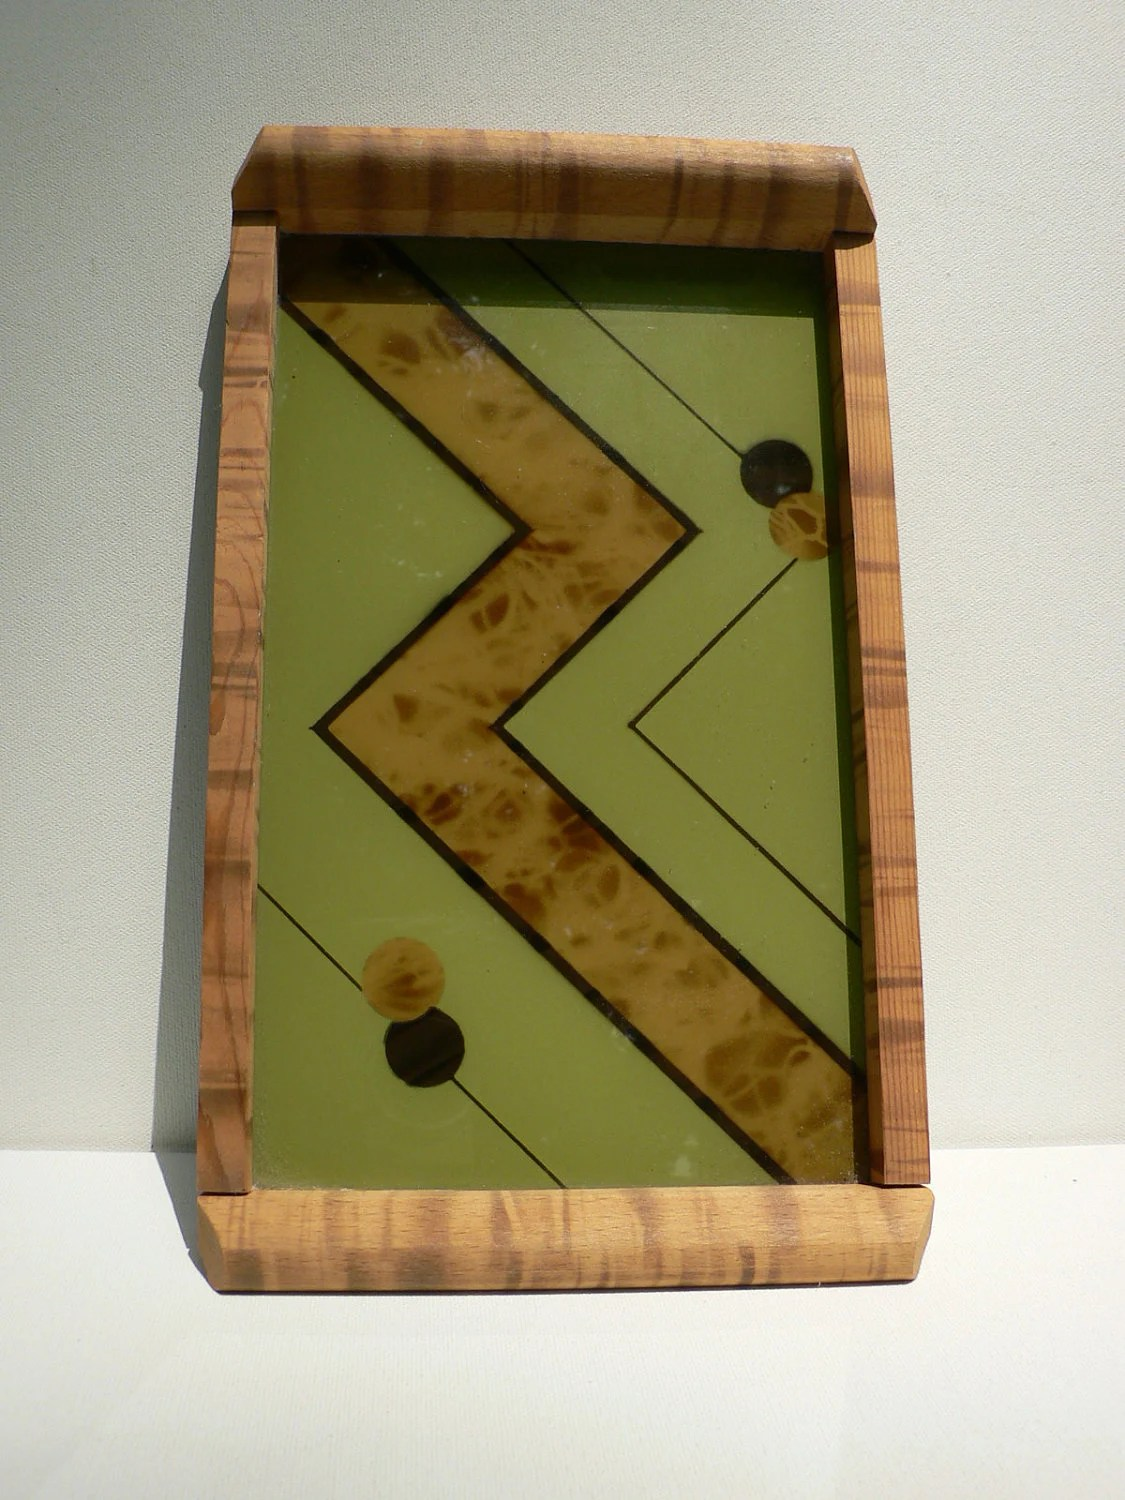 art deco french tray green glass & wood / 1930s bar ware serving tray / abstract modernist french tray